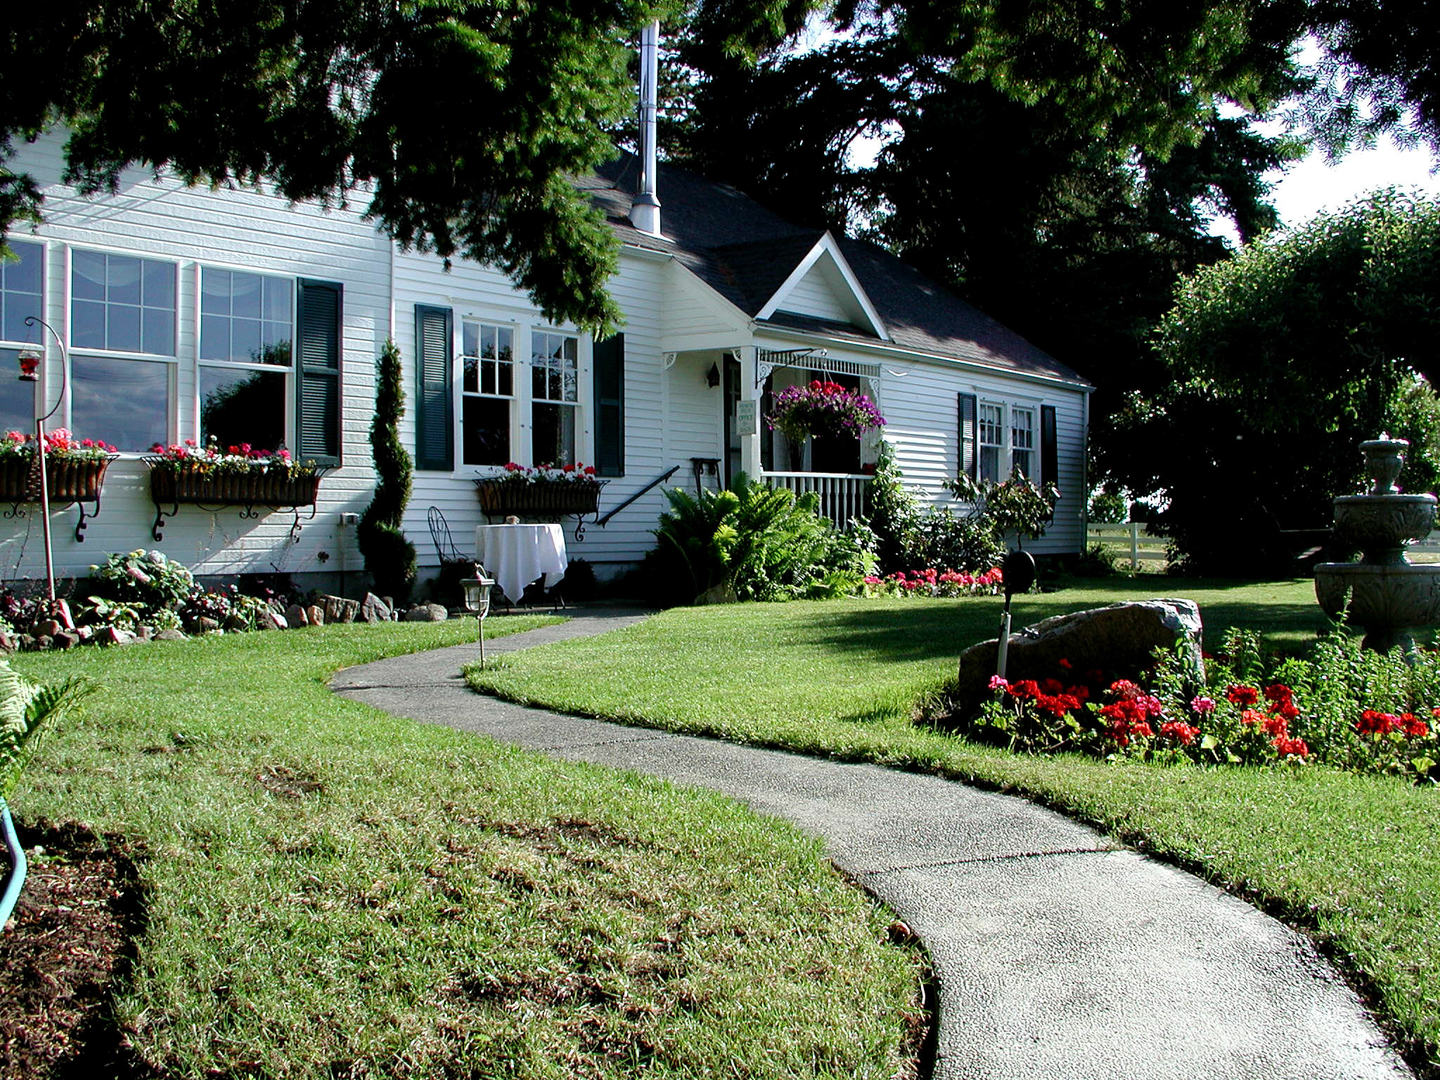 A large lawn in front of a house at Cozy Rose Bed and Breakfast.